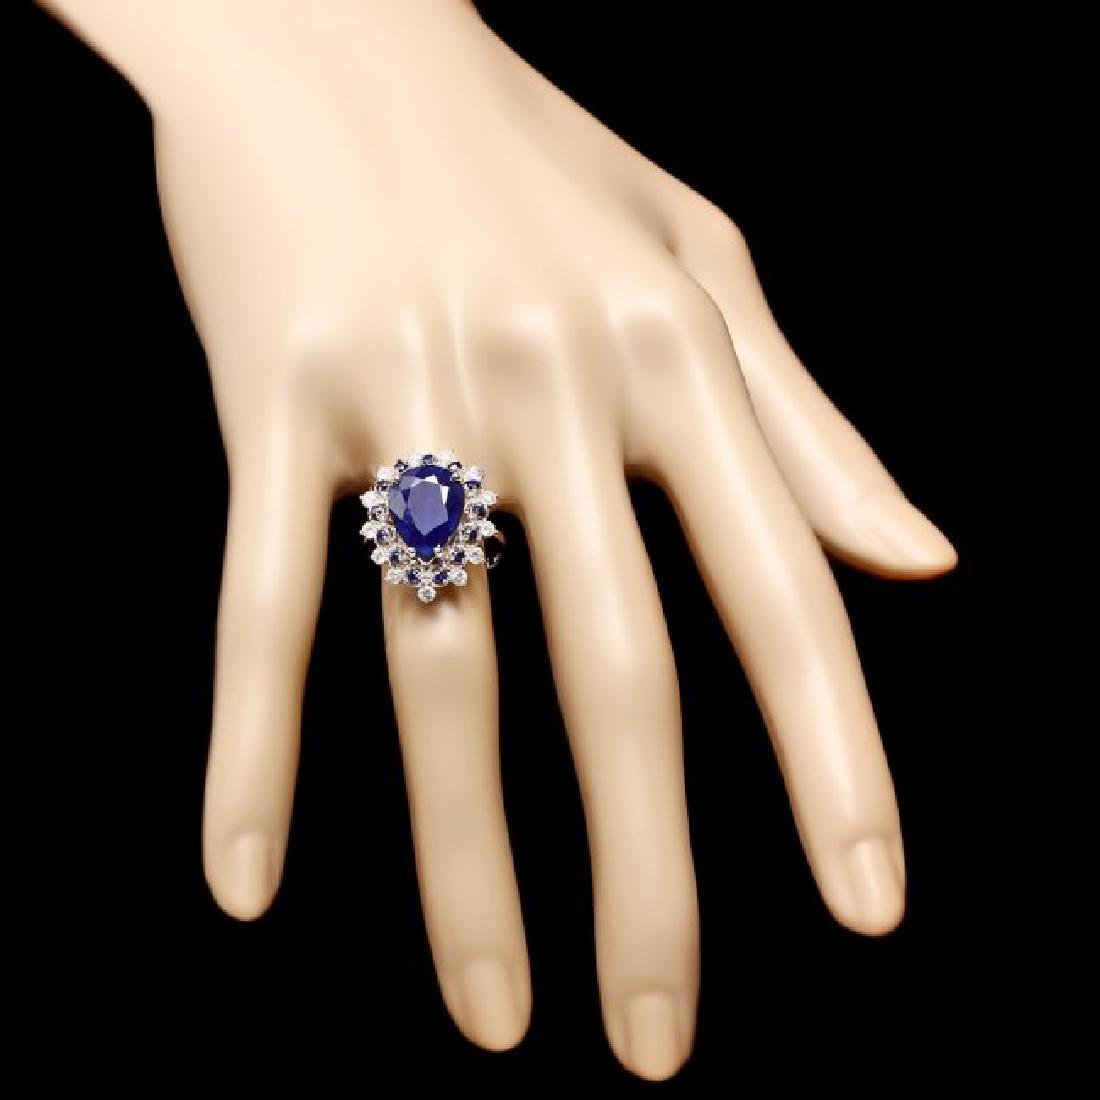 14k Gold 5.55ct Sapphire 0.55ct Diamond Ring - 4